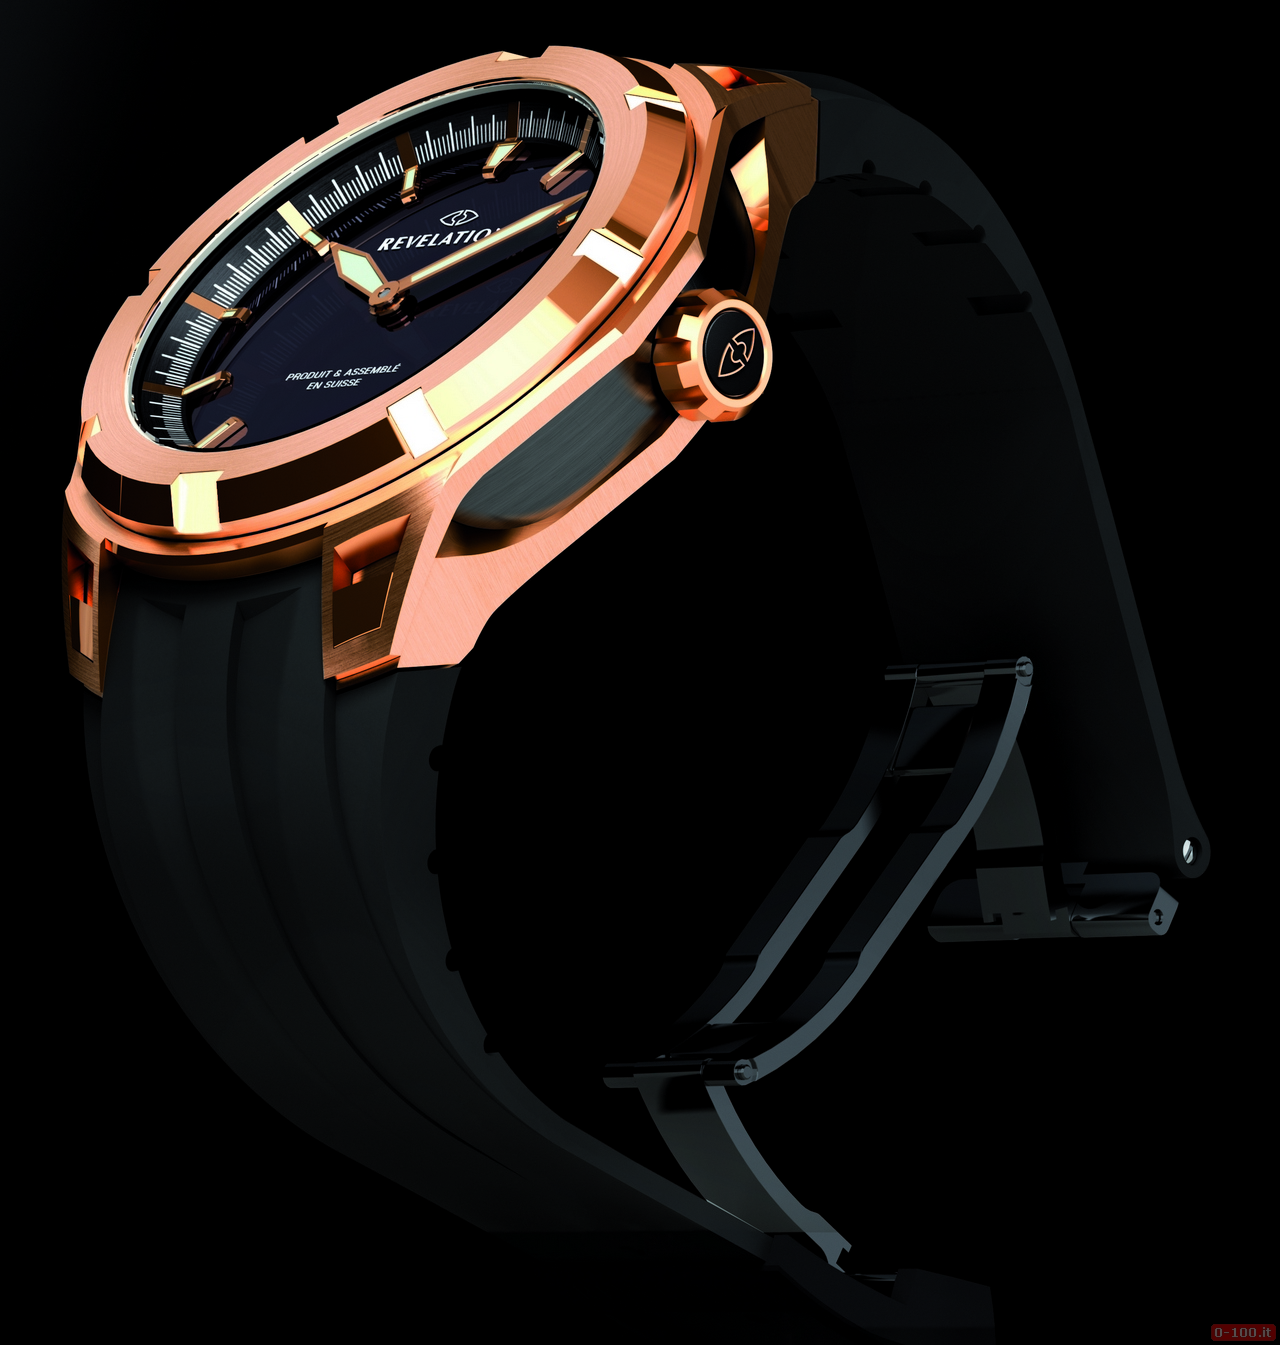 anteprima-baselword-2013-revelation-r04-tourbillon-magical-watch-dial_0-100_5